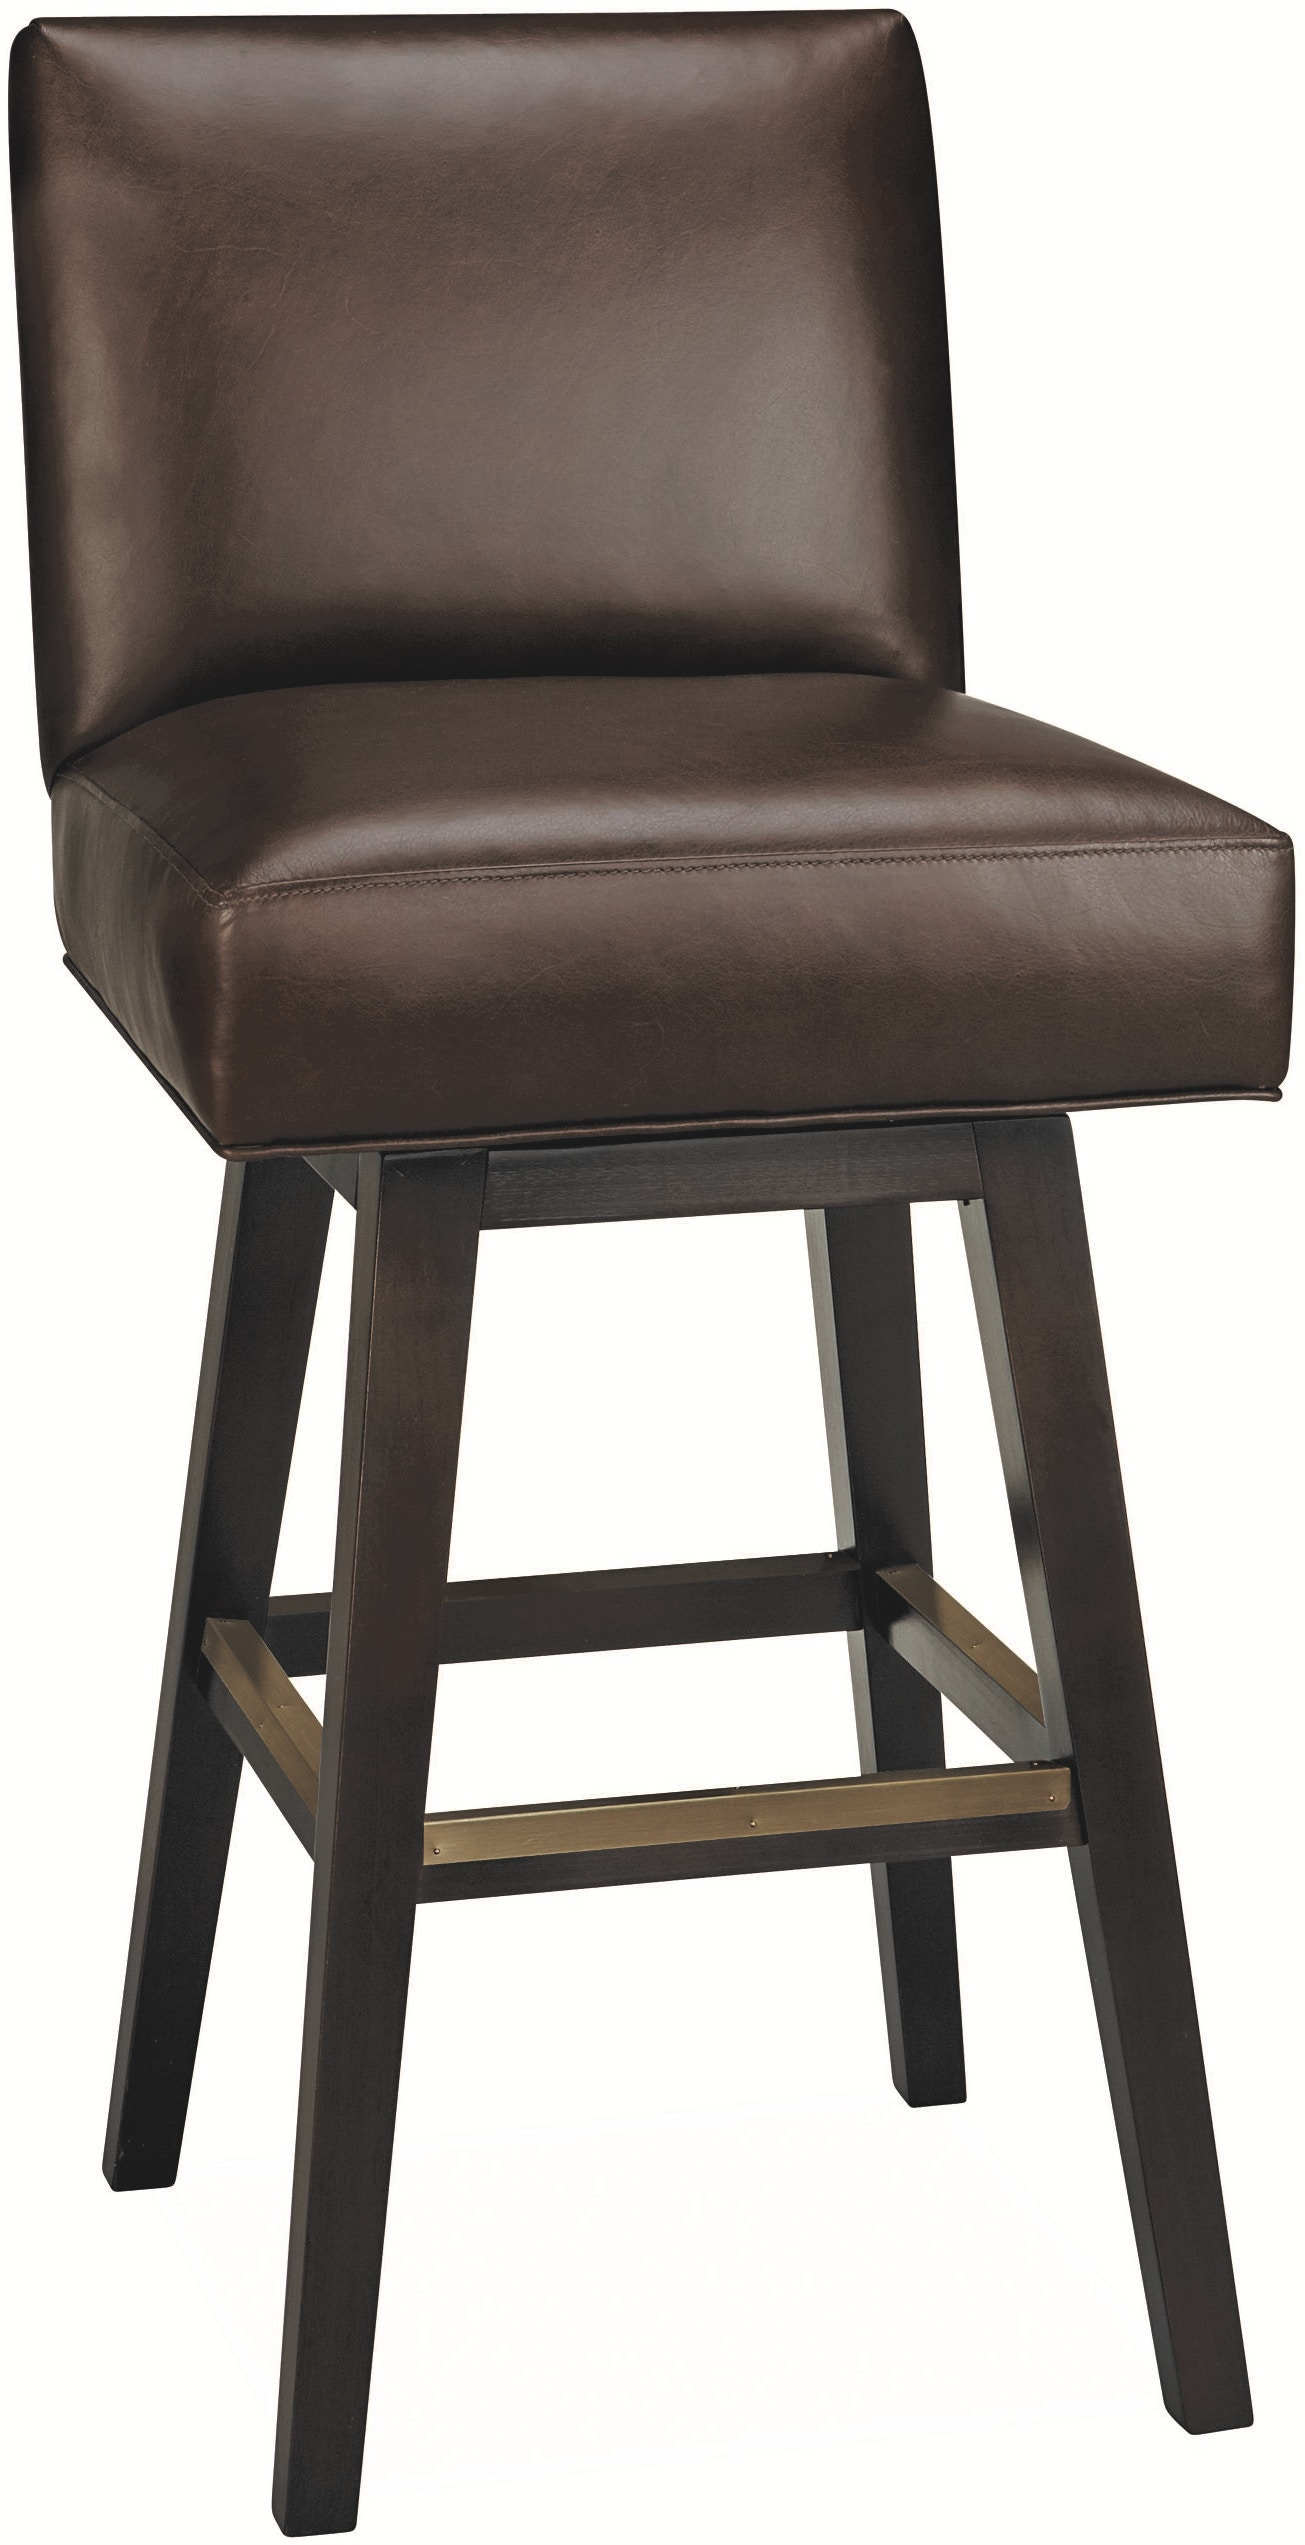 Lee Industries Bar And Game Room Leather Swivel Bar Stool